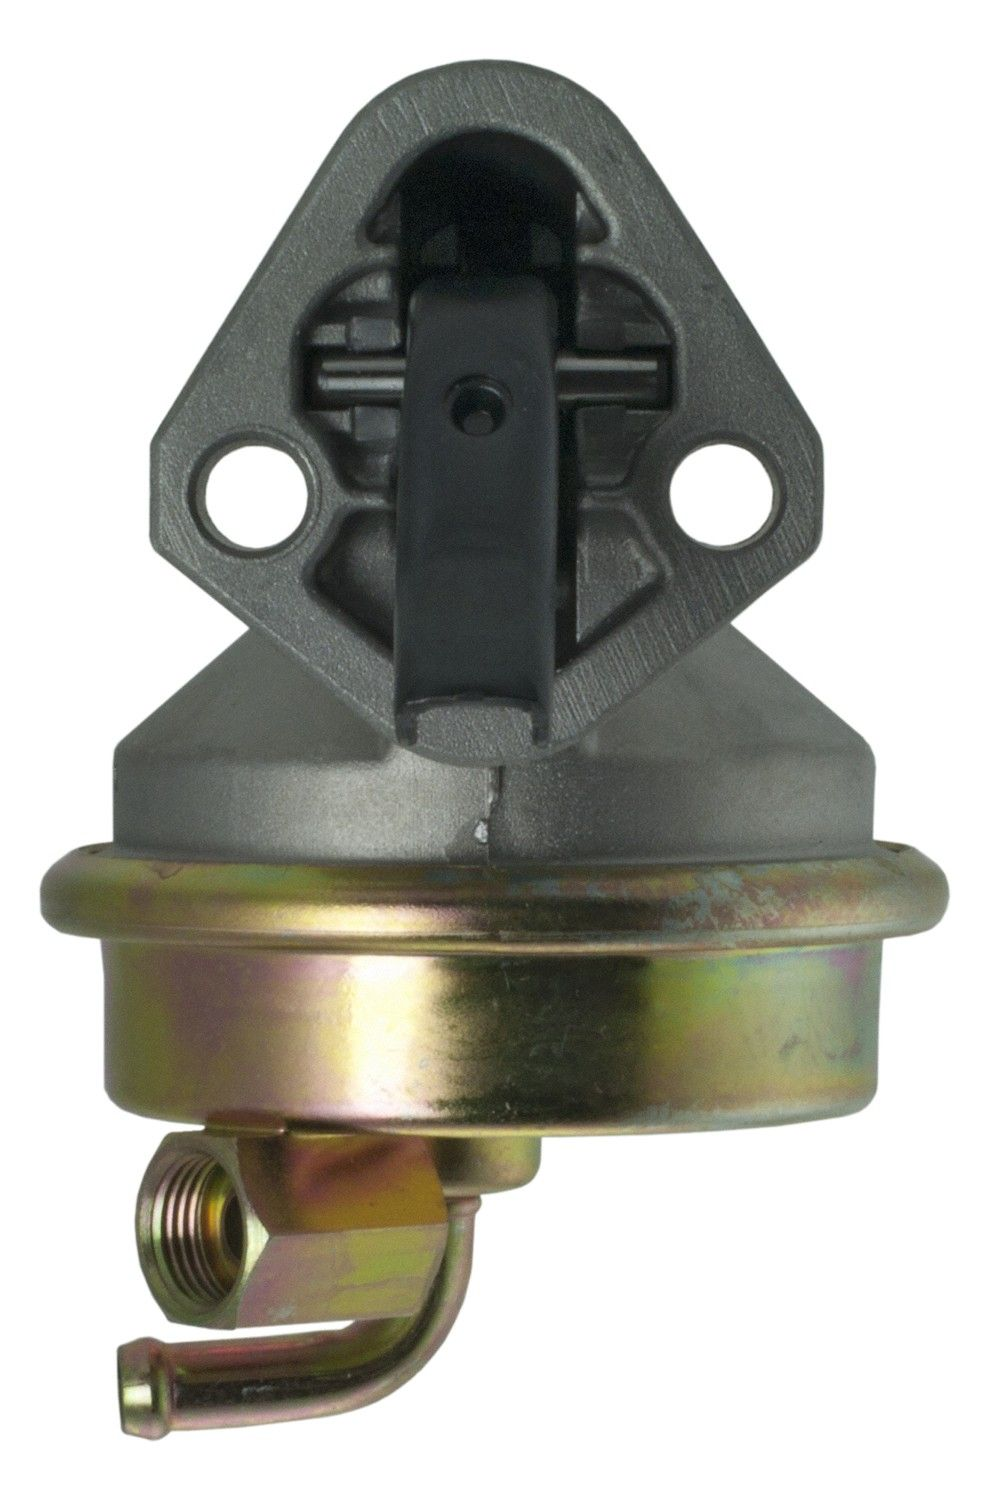 Chevrolet P30 Mechanical Fuel Pump Replacement Airtex Carter 1976 Chevy System 1975 8 Cyl 57l M6624 2 Line Except Motor Home